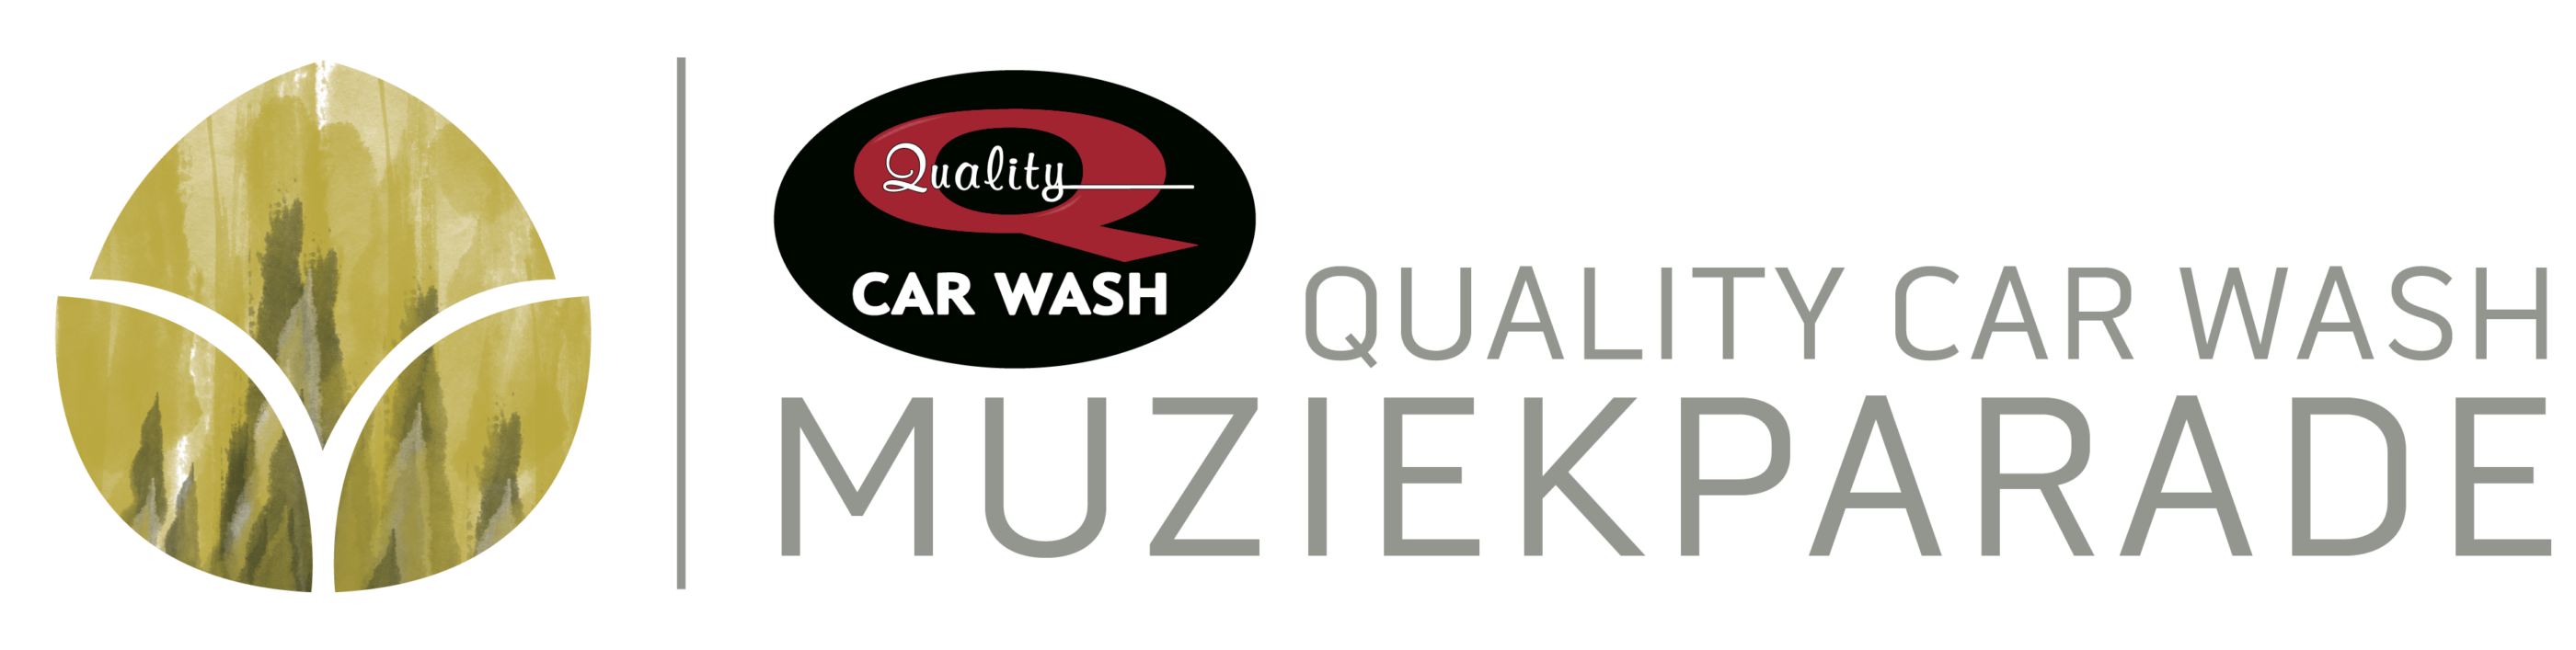 Muziekparade, sponsored by Quality Car Wash